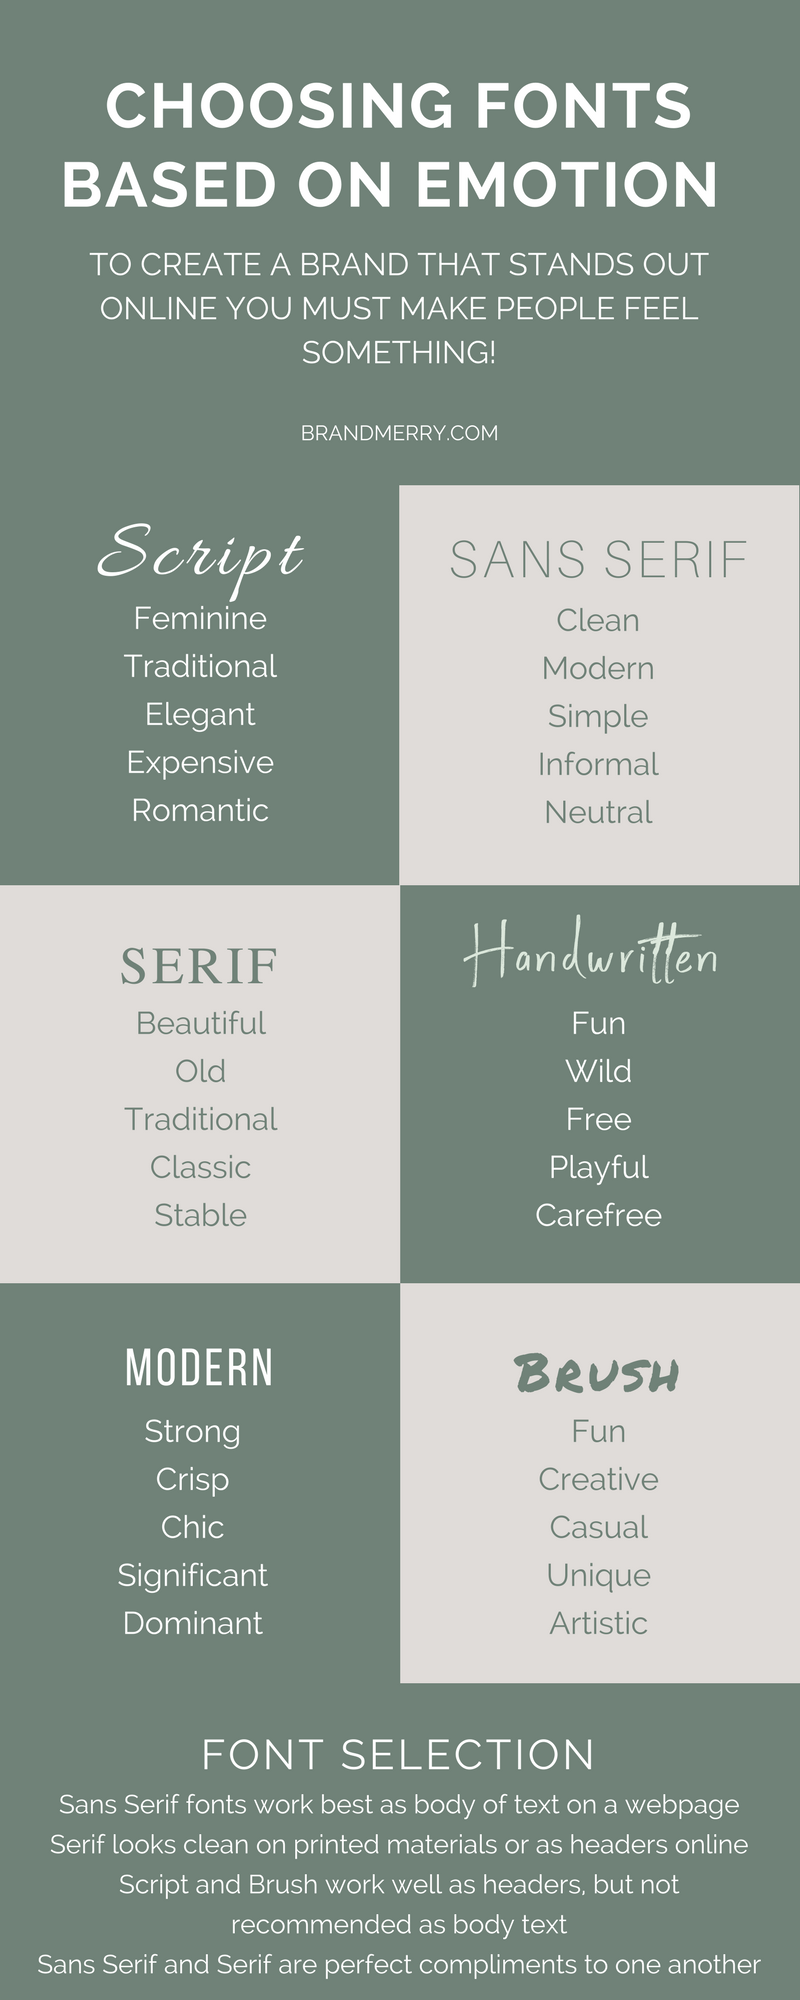 How to choose fonts for your brand that make your audience feel something.